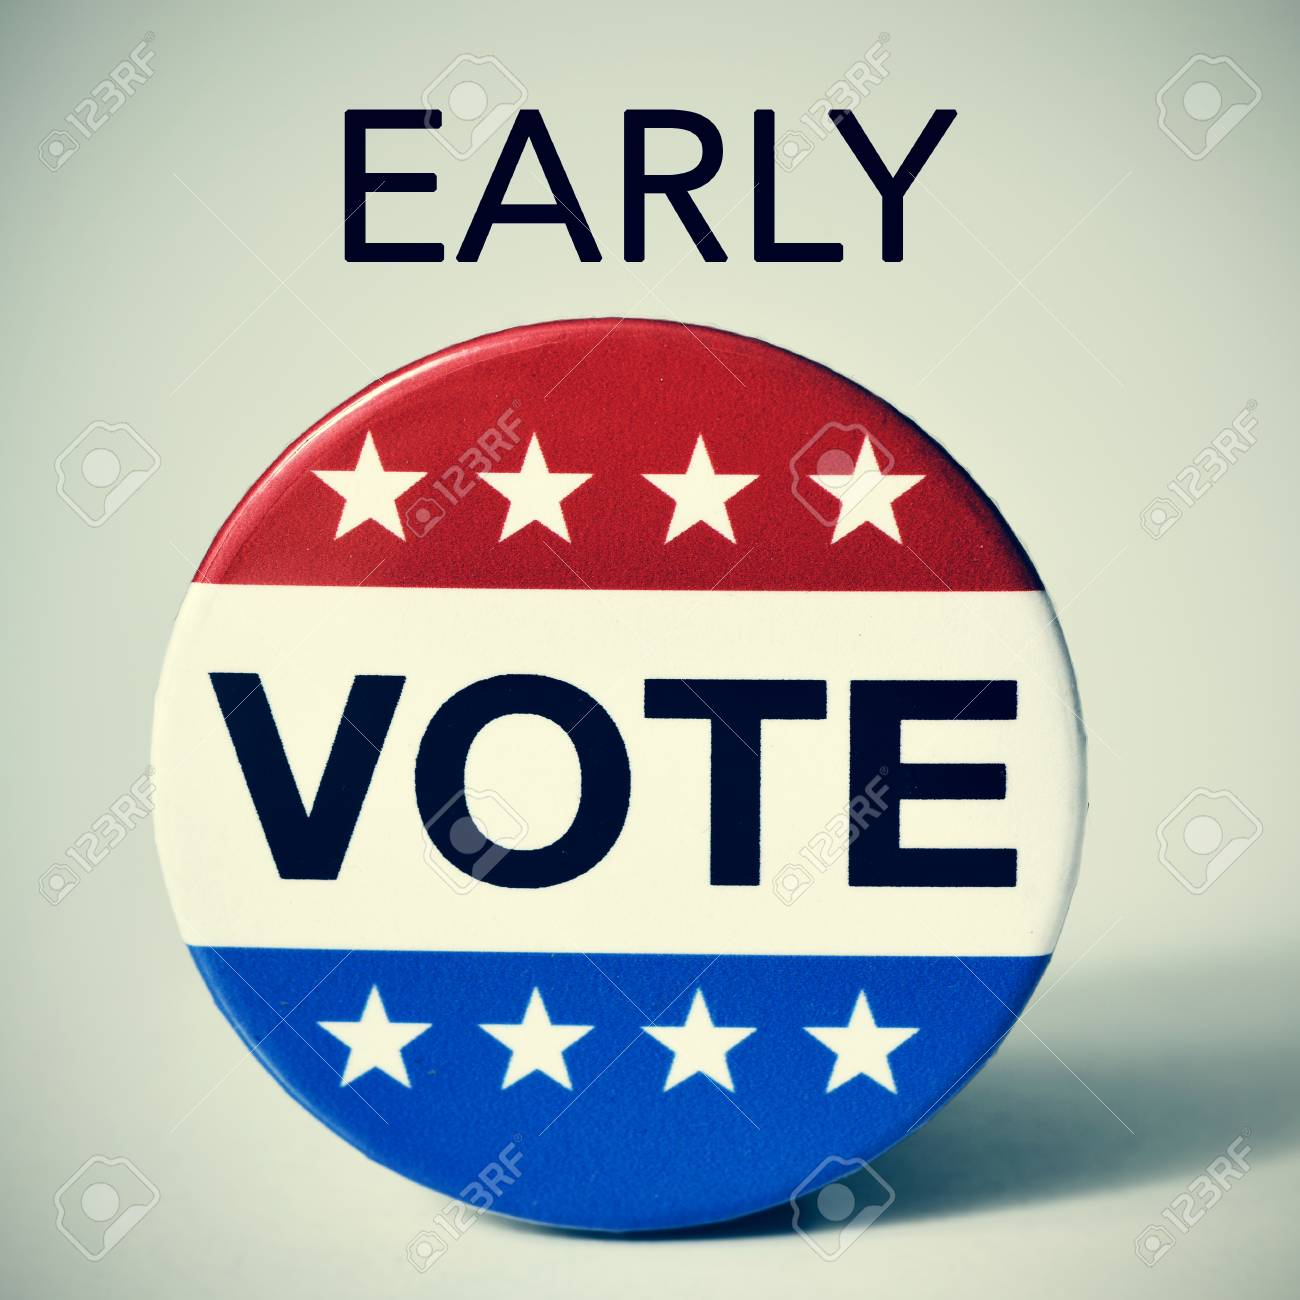 closeup of a badge with the word vote written in it, and the word early, for the early vote in the United States election, with a slight vignette added - 65455979